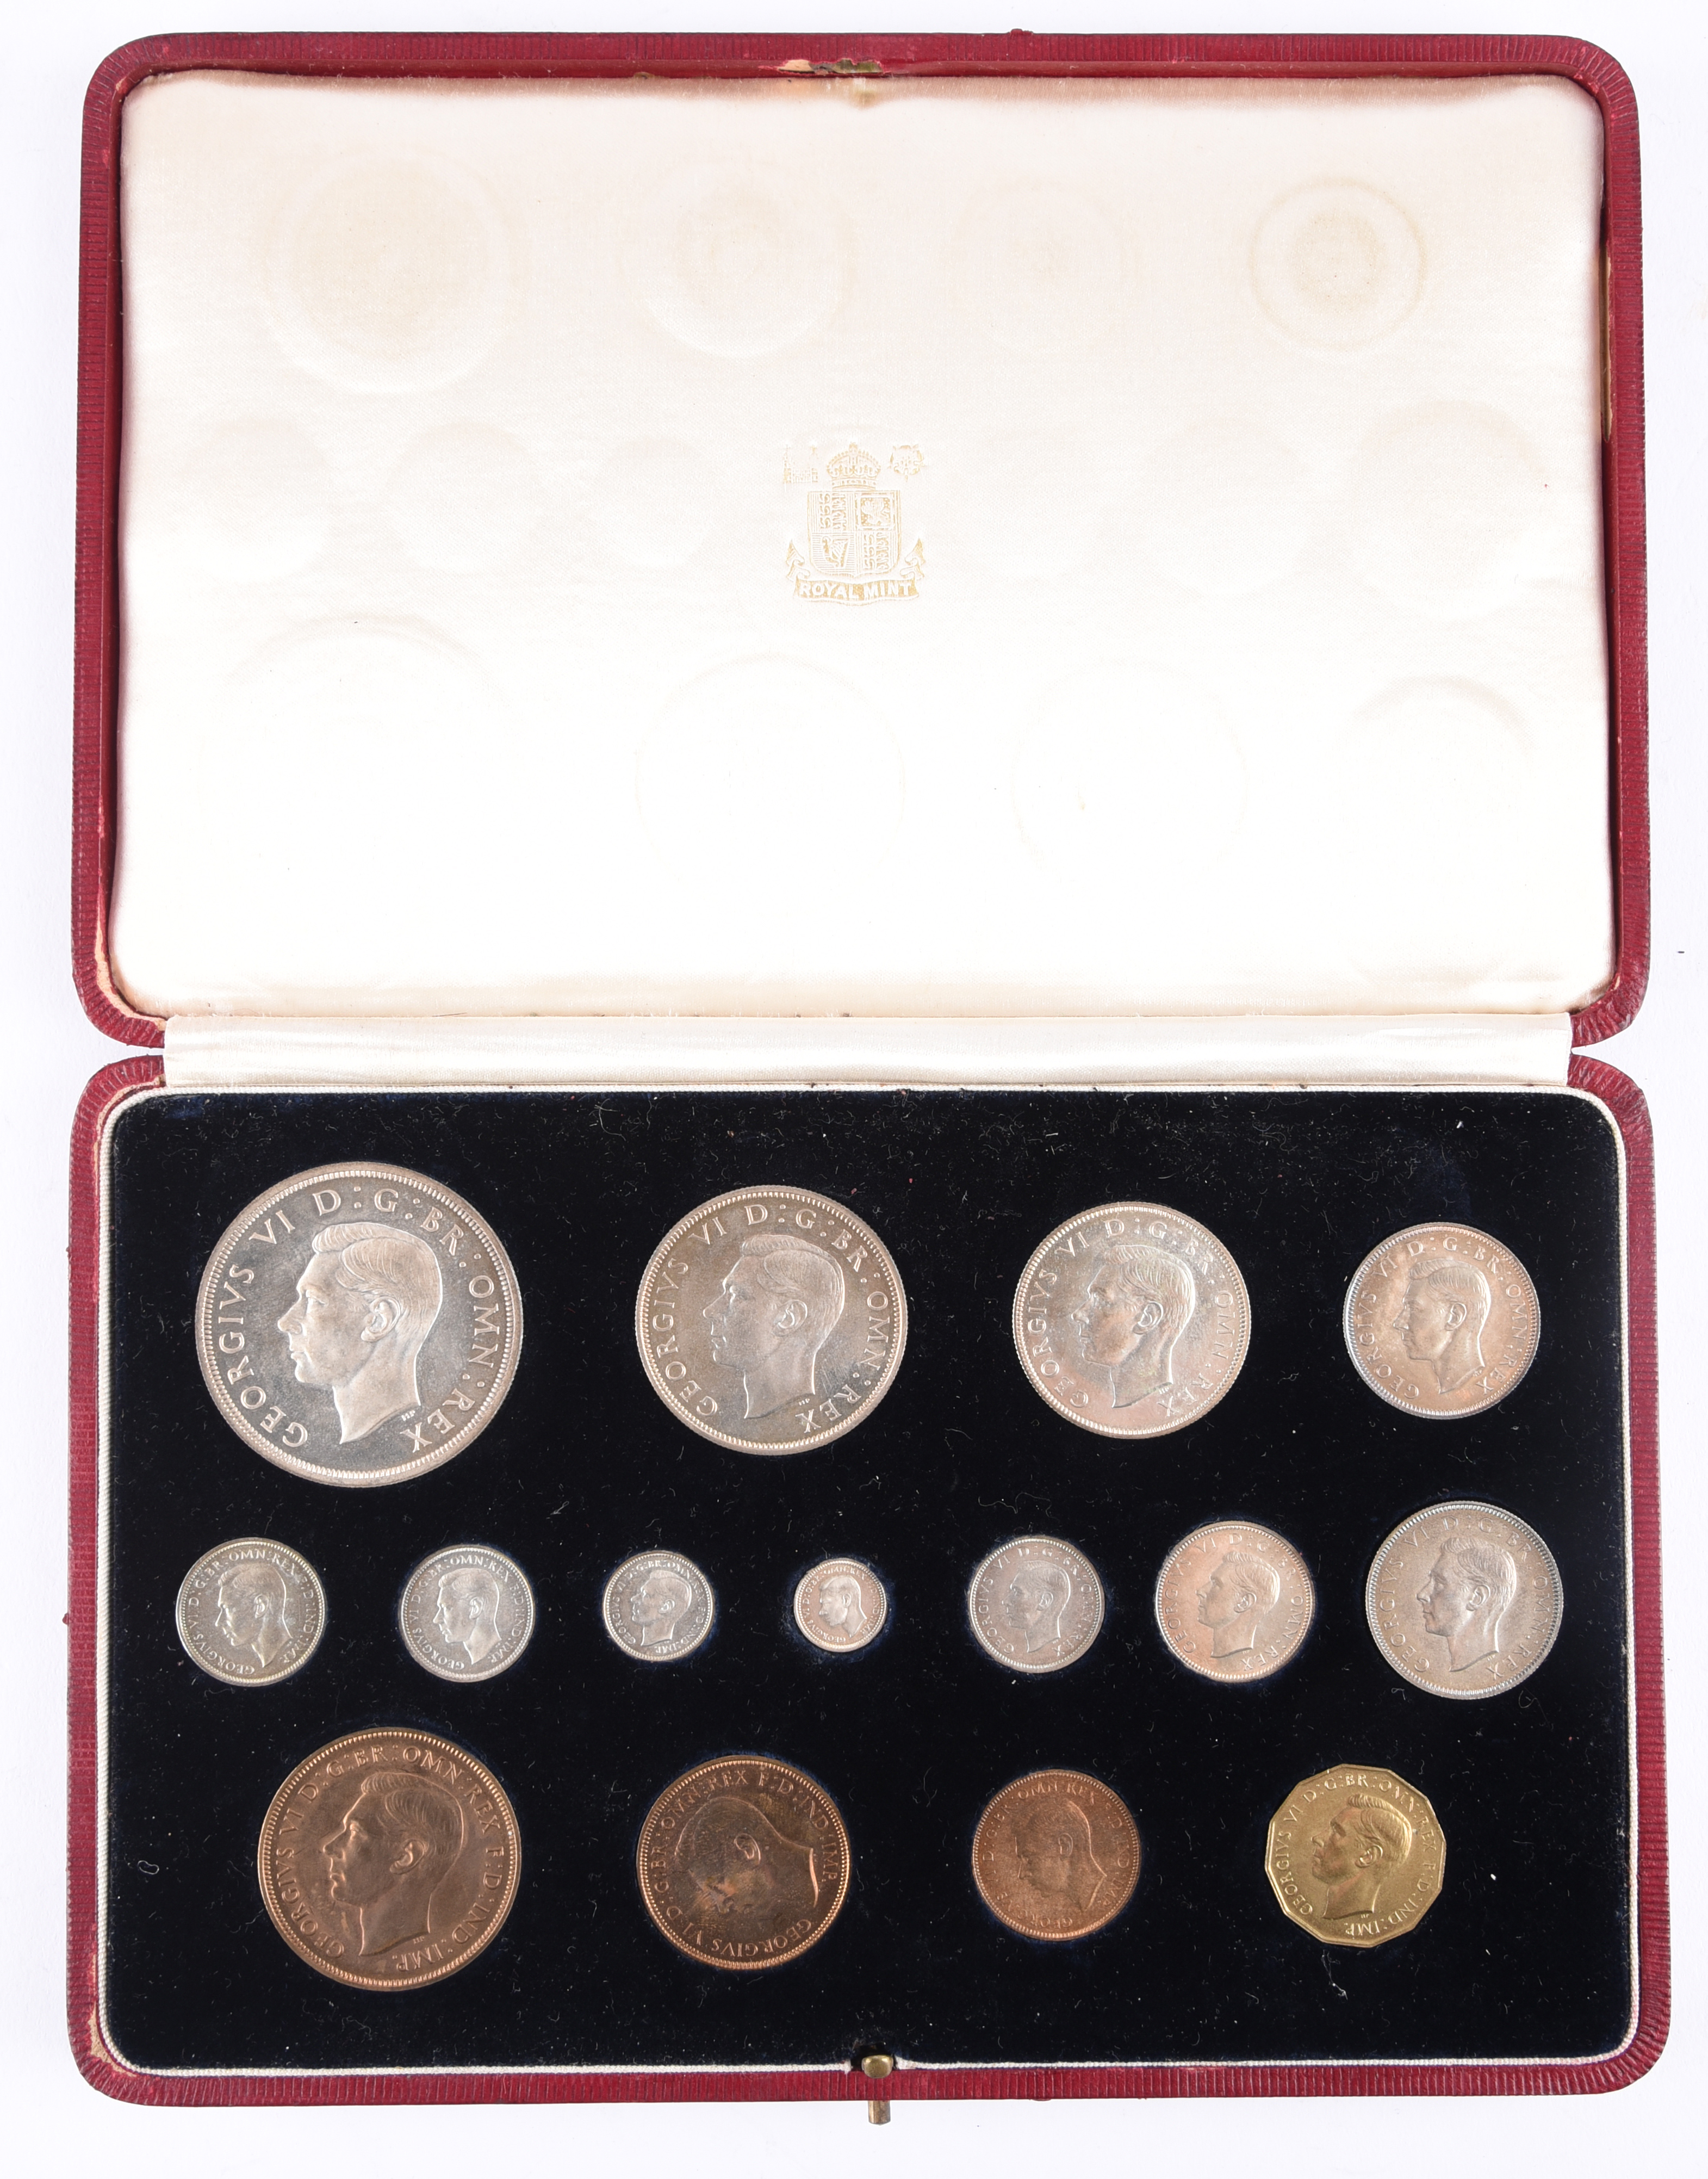 George VI: specimen set 1937, 15 coins, crown to farthing including maundy set, in original red - Image 3 of 3